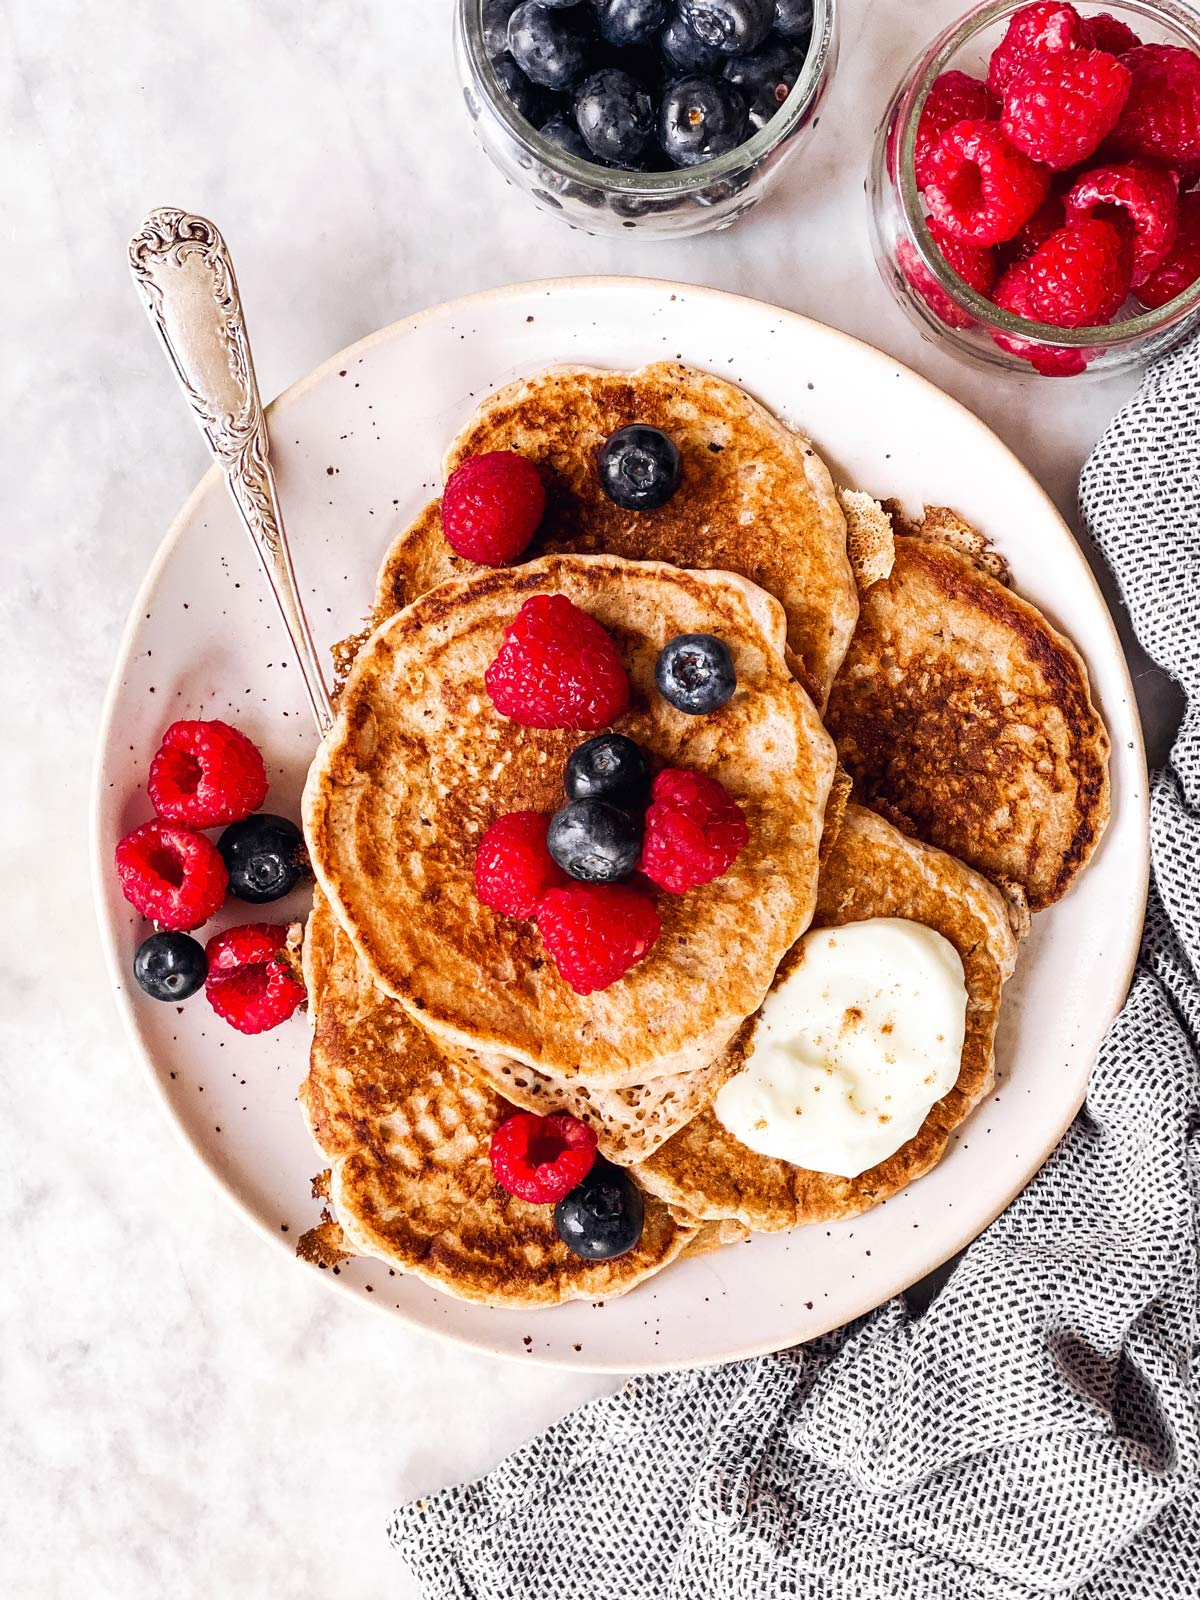 plate with sourdough pancakes and berries on light surface with napkin